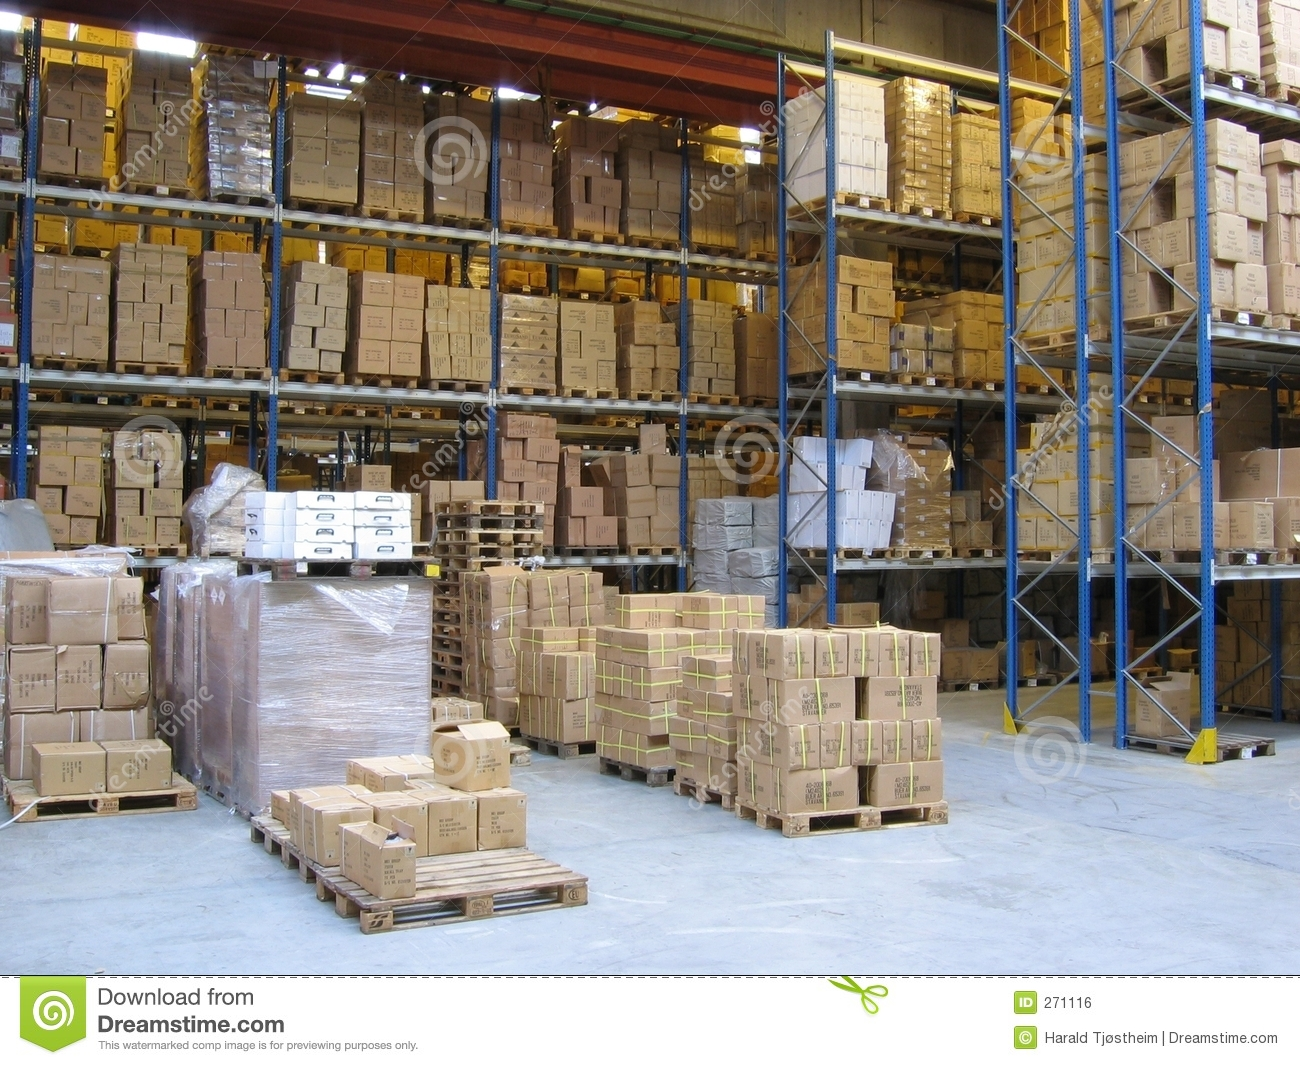 Stock Fotos E Imágenes: At A Warehouse Royalty Free Stock Image